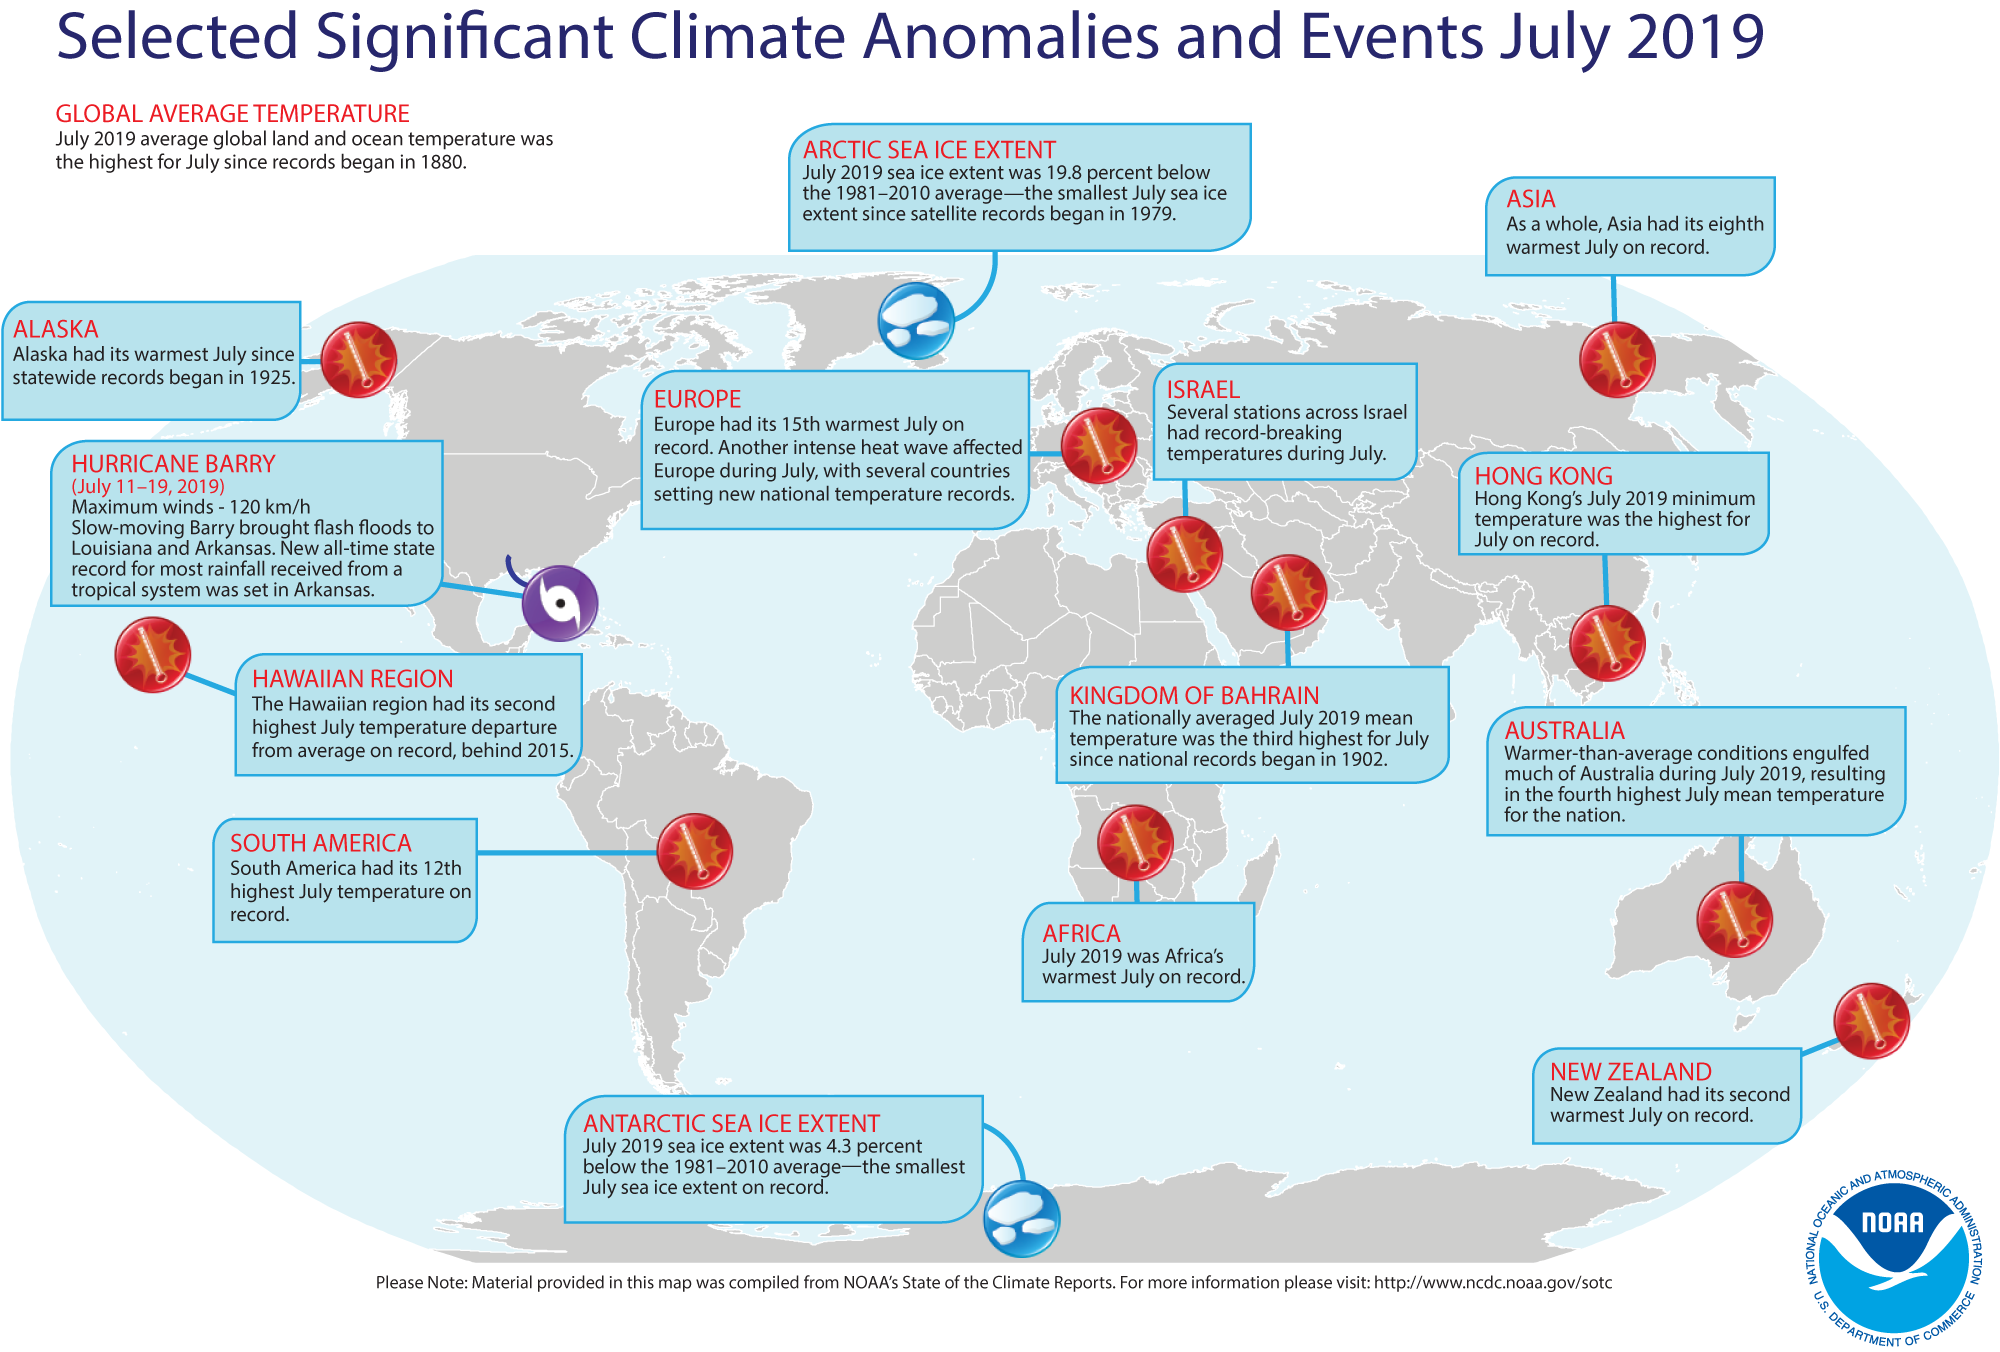 This monthly summary, developed by scientists at NOAA